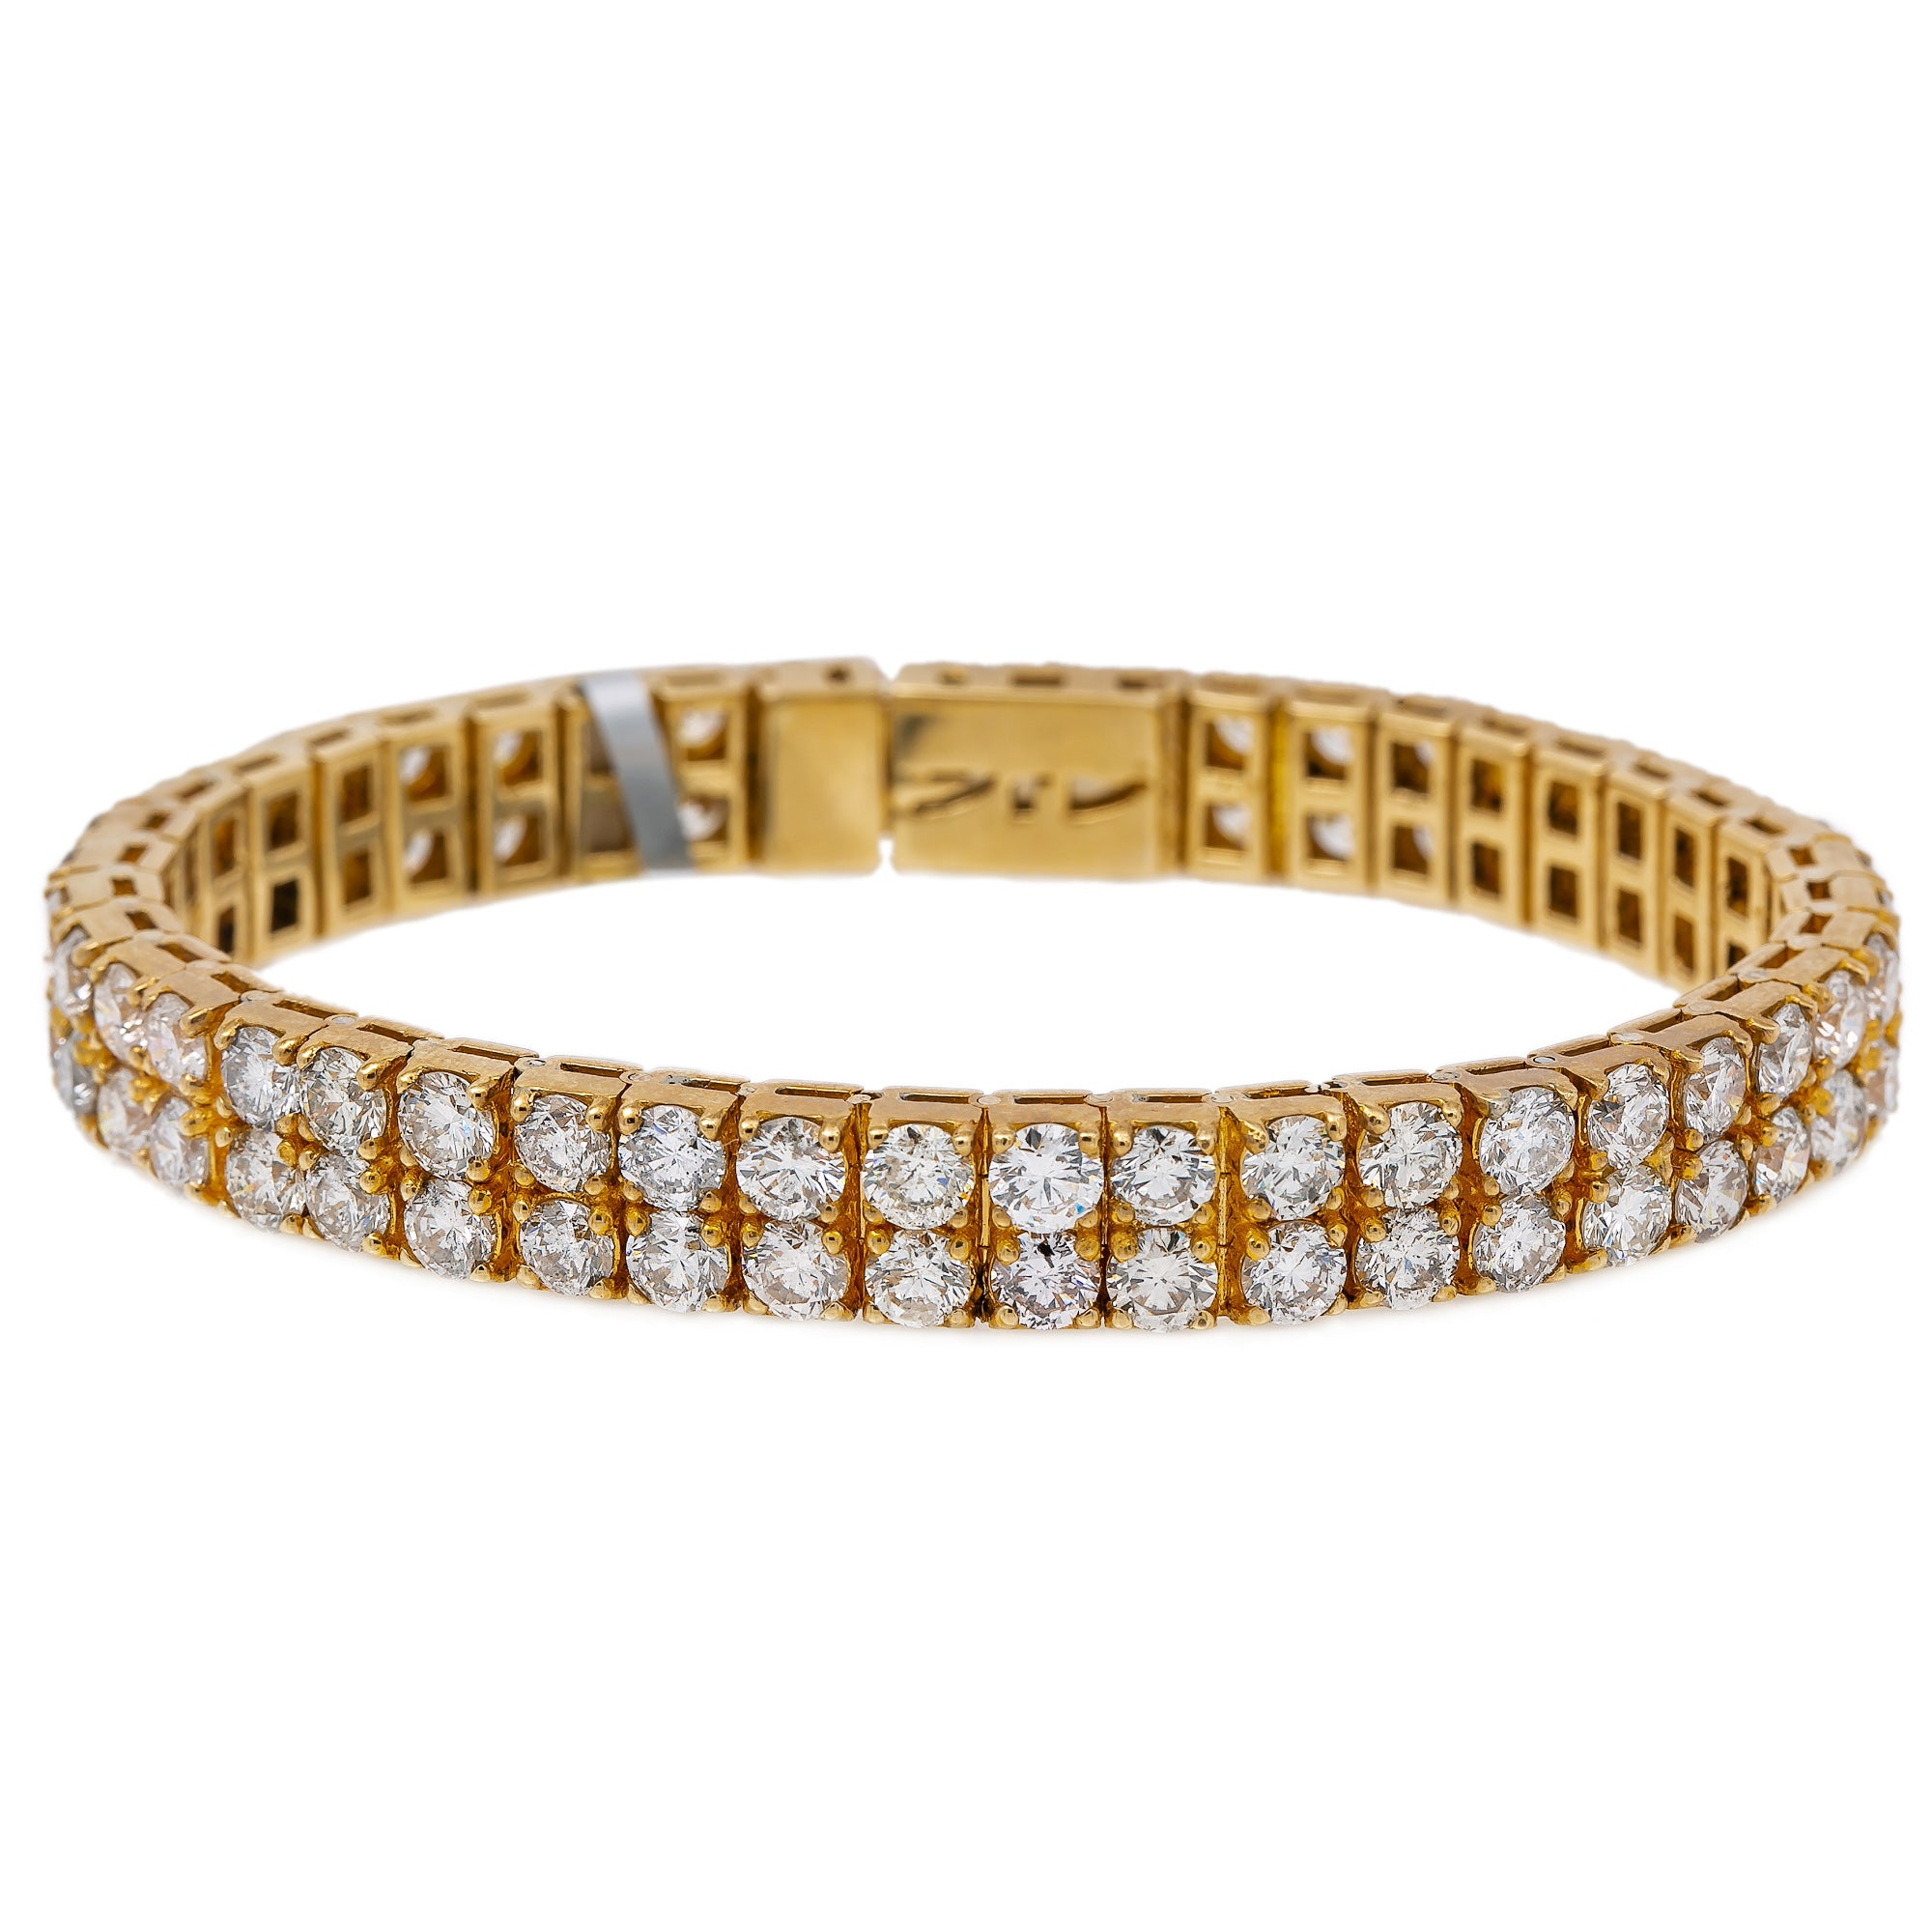 10K YELLOW GOLD WOMEN'S BRACELET WITH 26.40 CT DIAMONDS